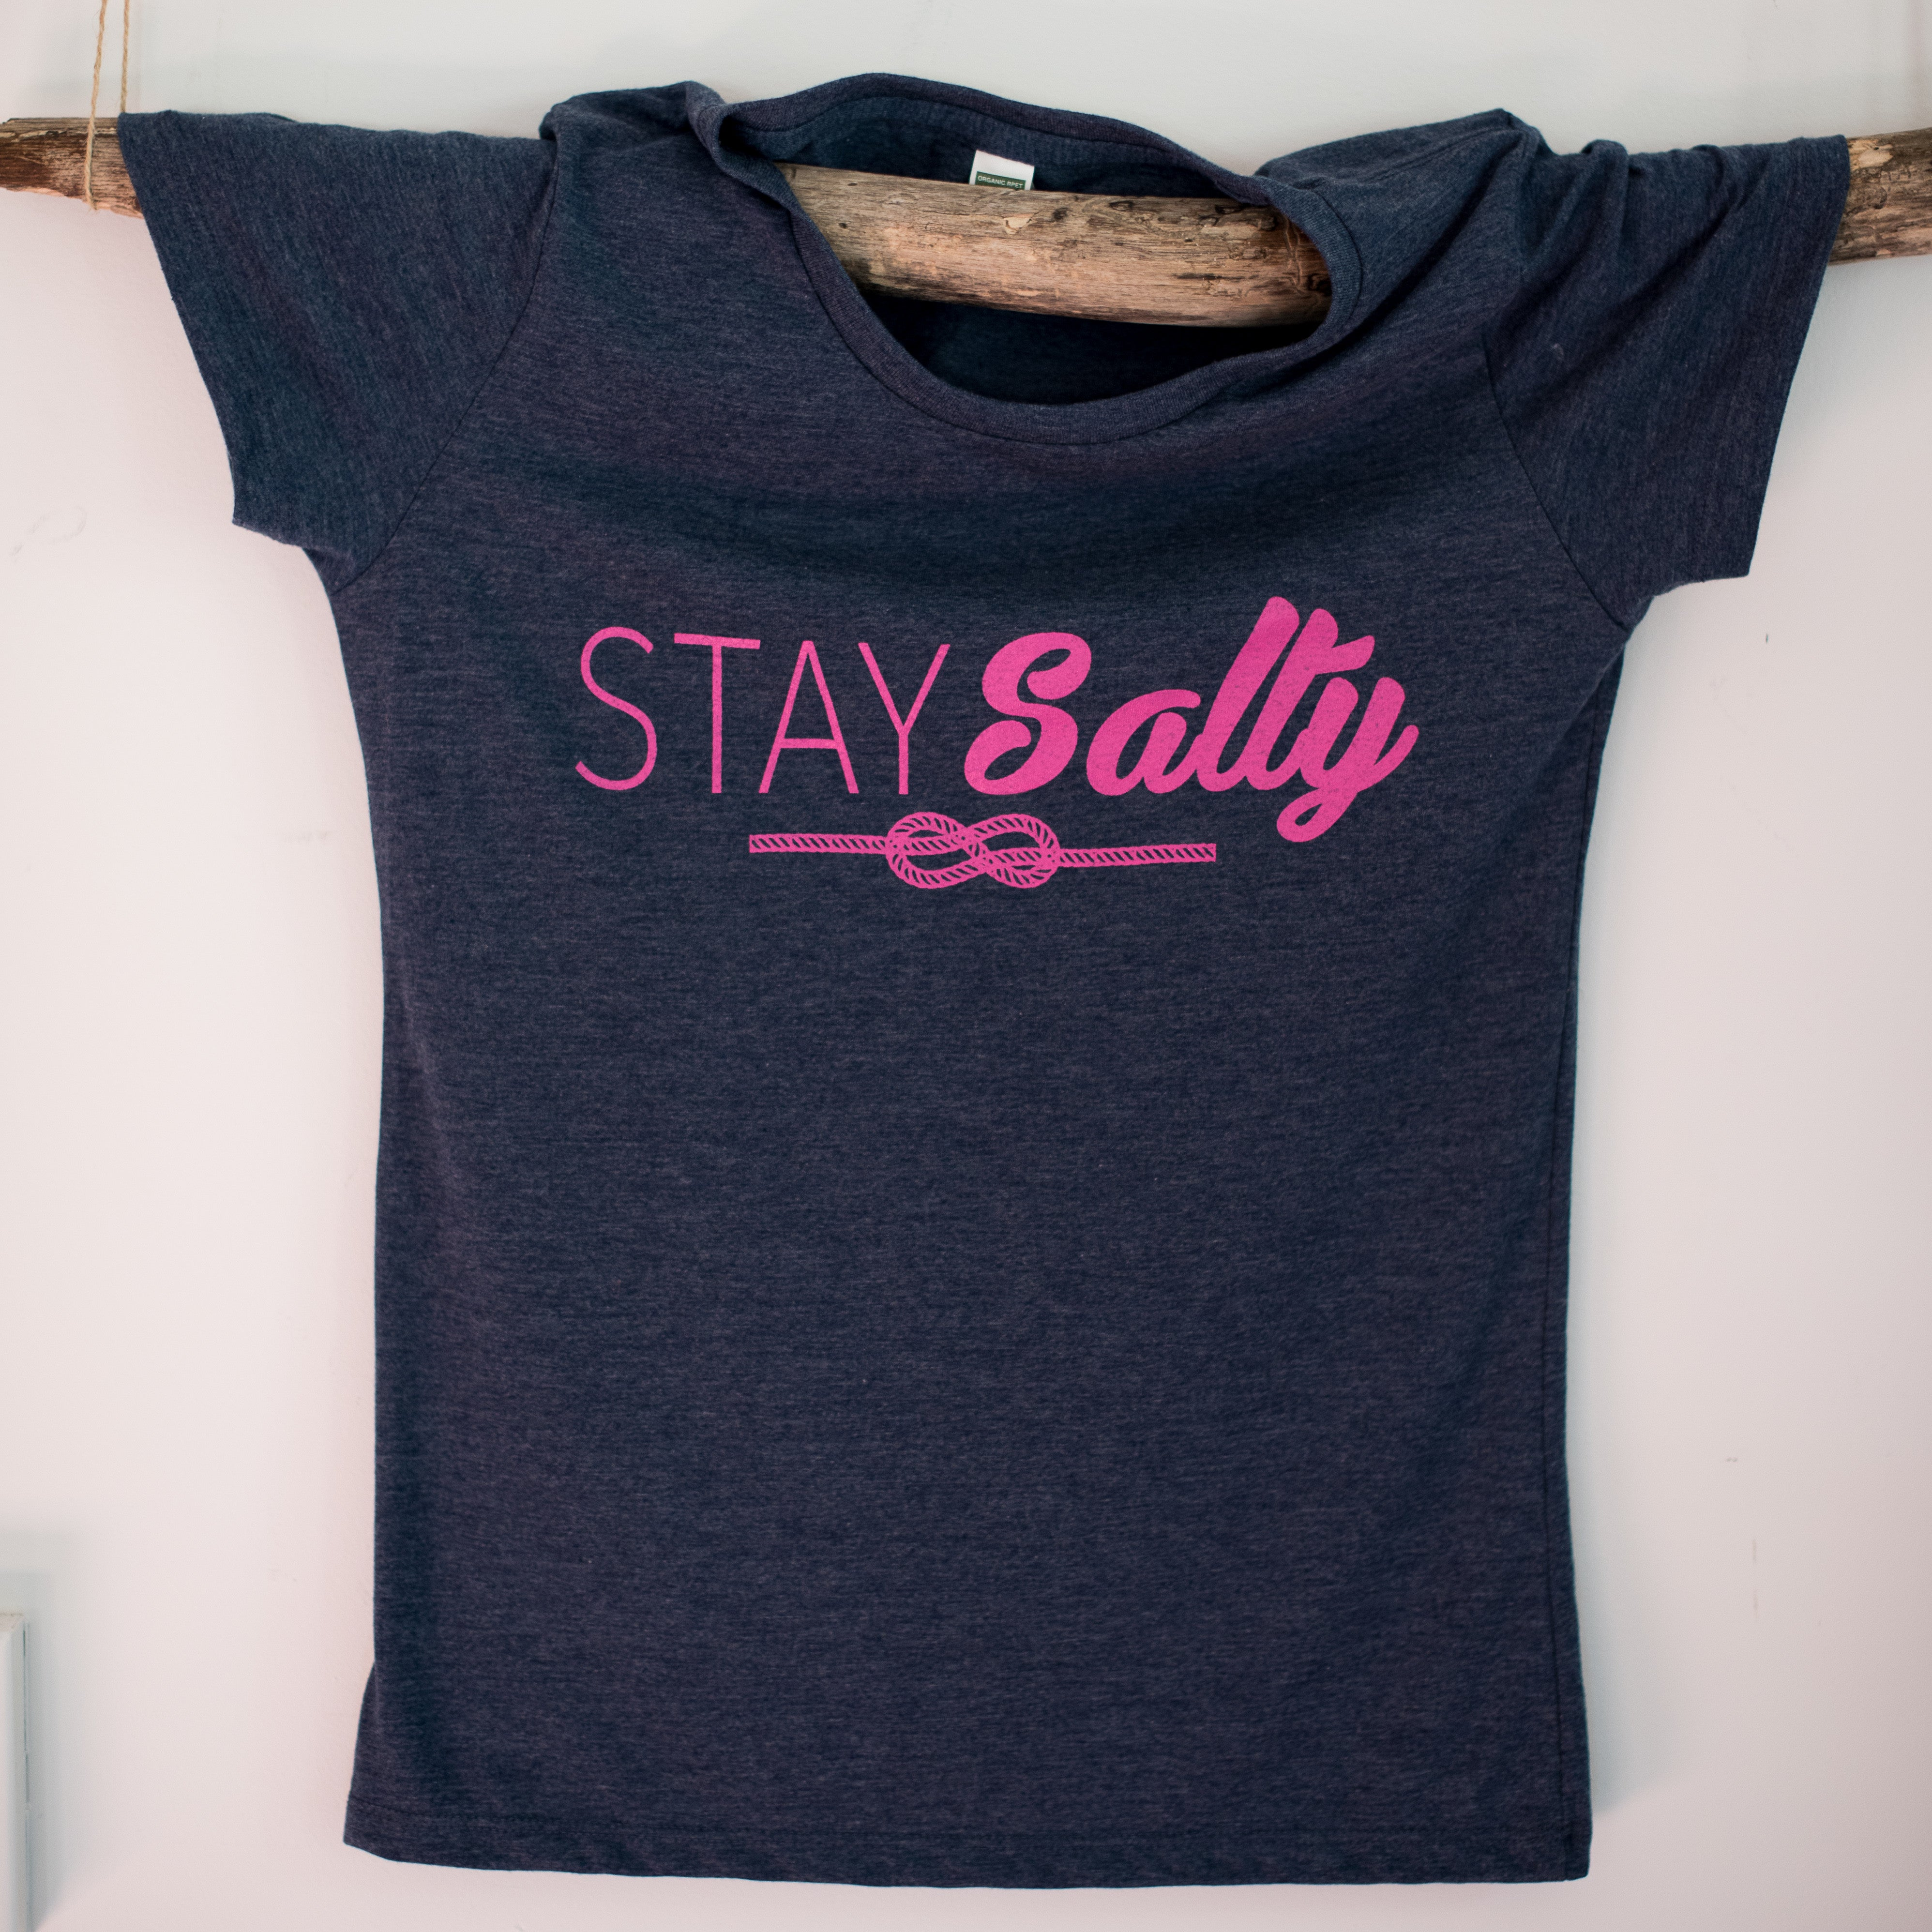 Stay Salty T-Shirt - Navy Blue with Hot Pink